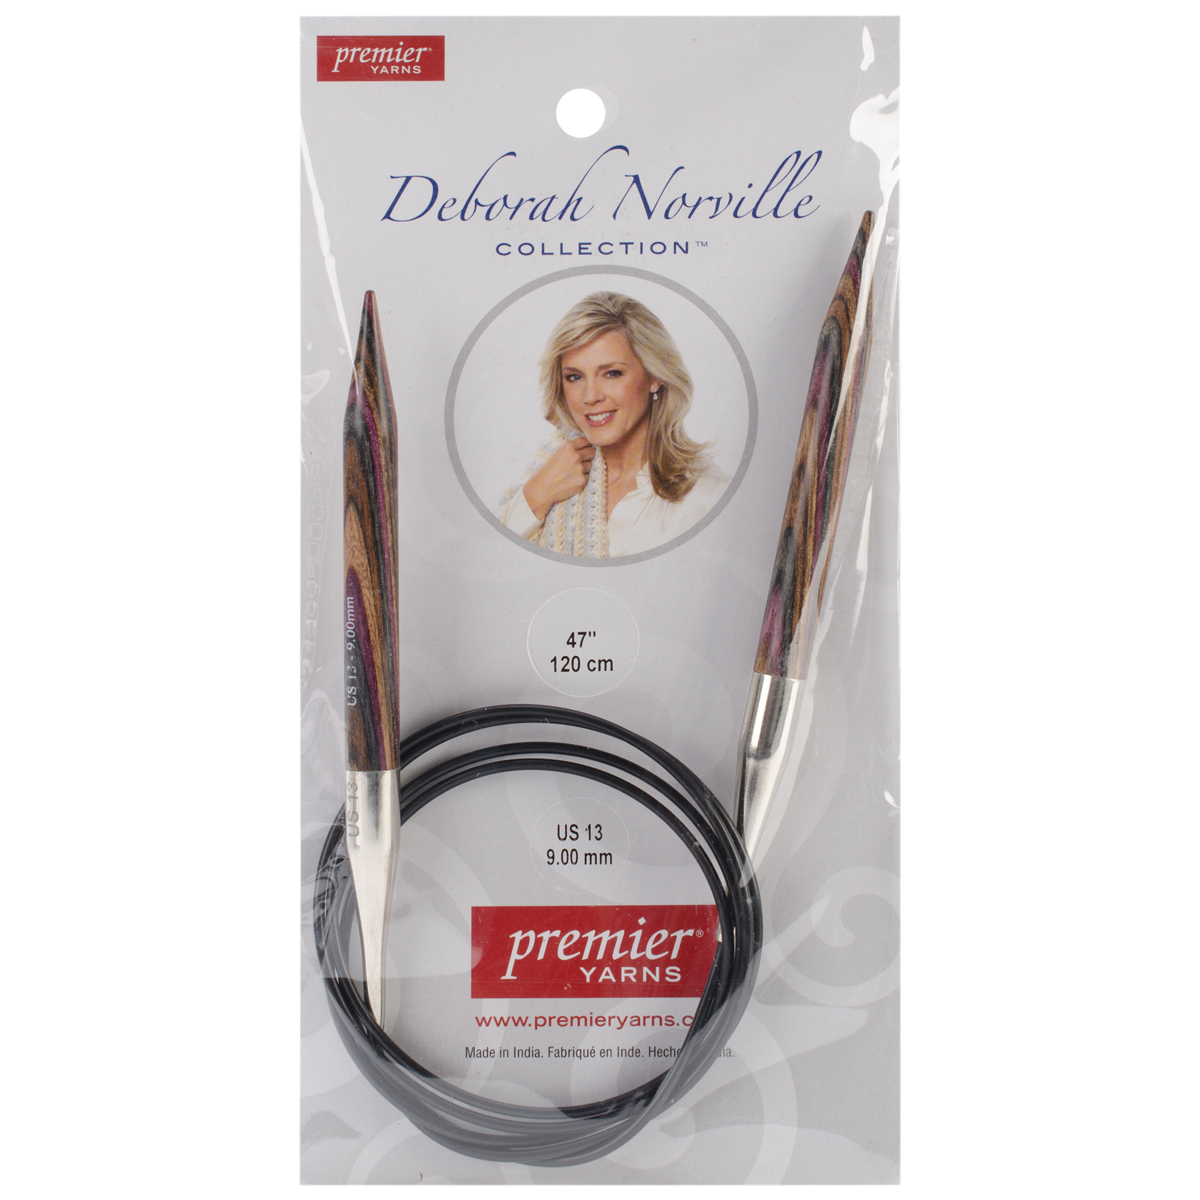 Premier Yarns Deborah Norville Fixed Circular Needles, 47-Inch, 13/9.0mm Multi-Colored